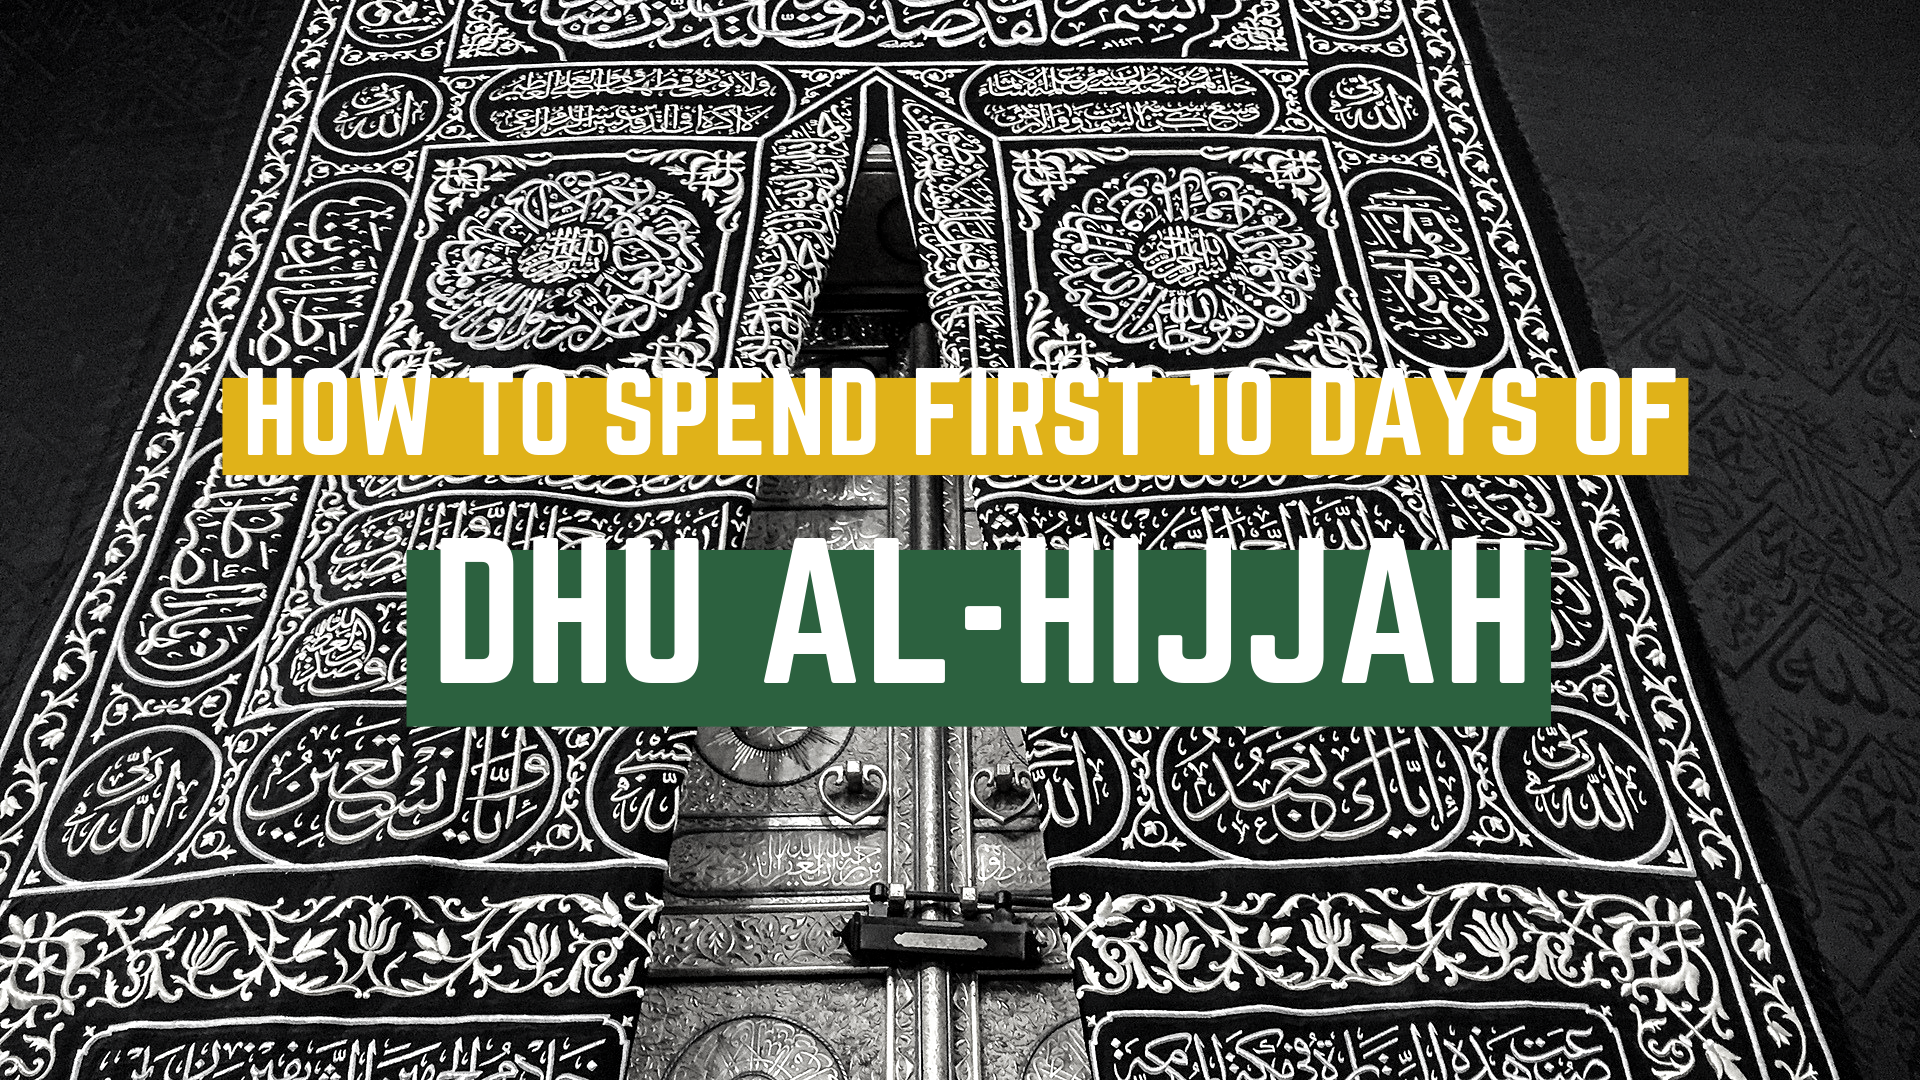 How to spend first 10 days of Dhul Hijjah